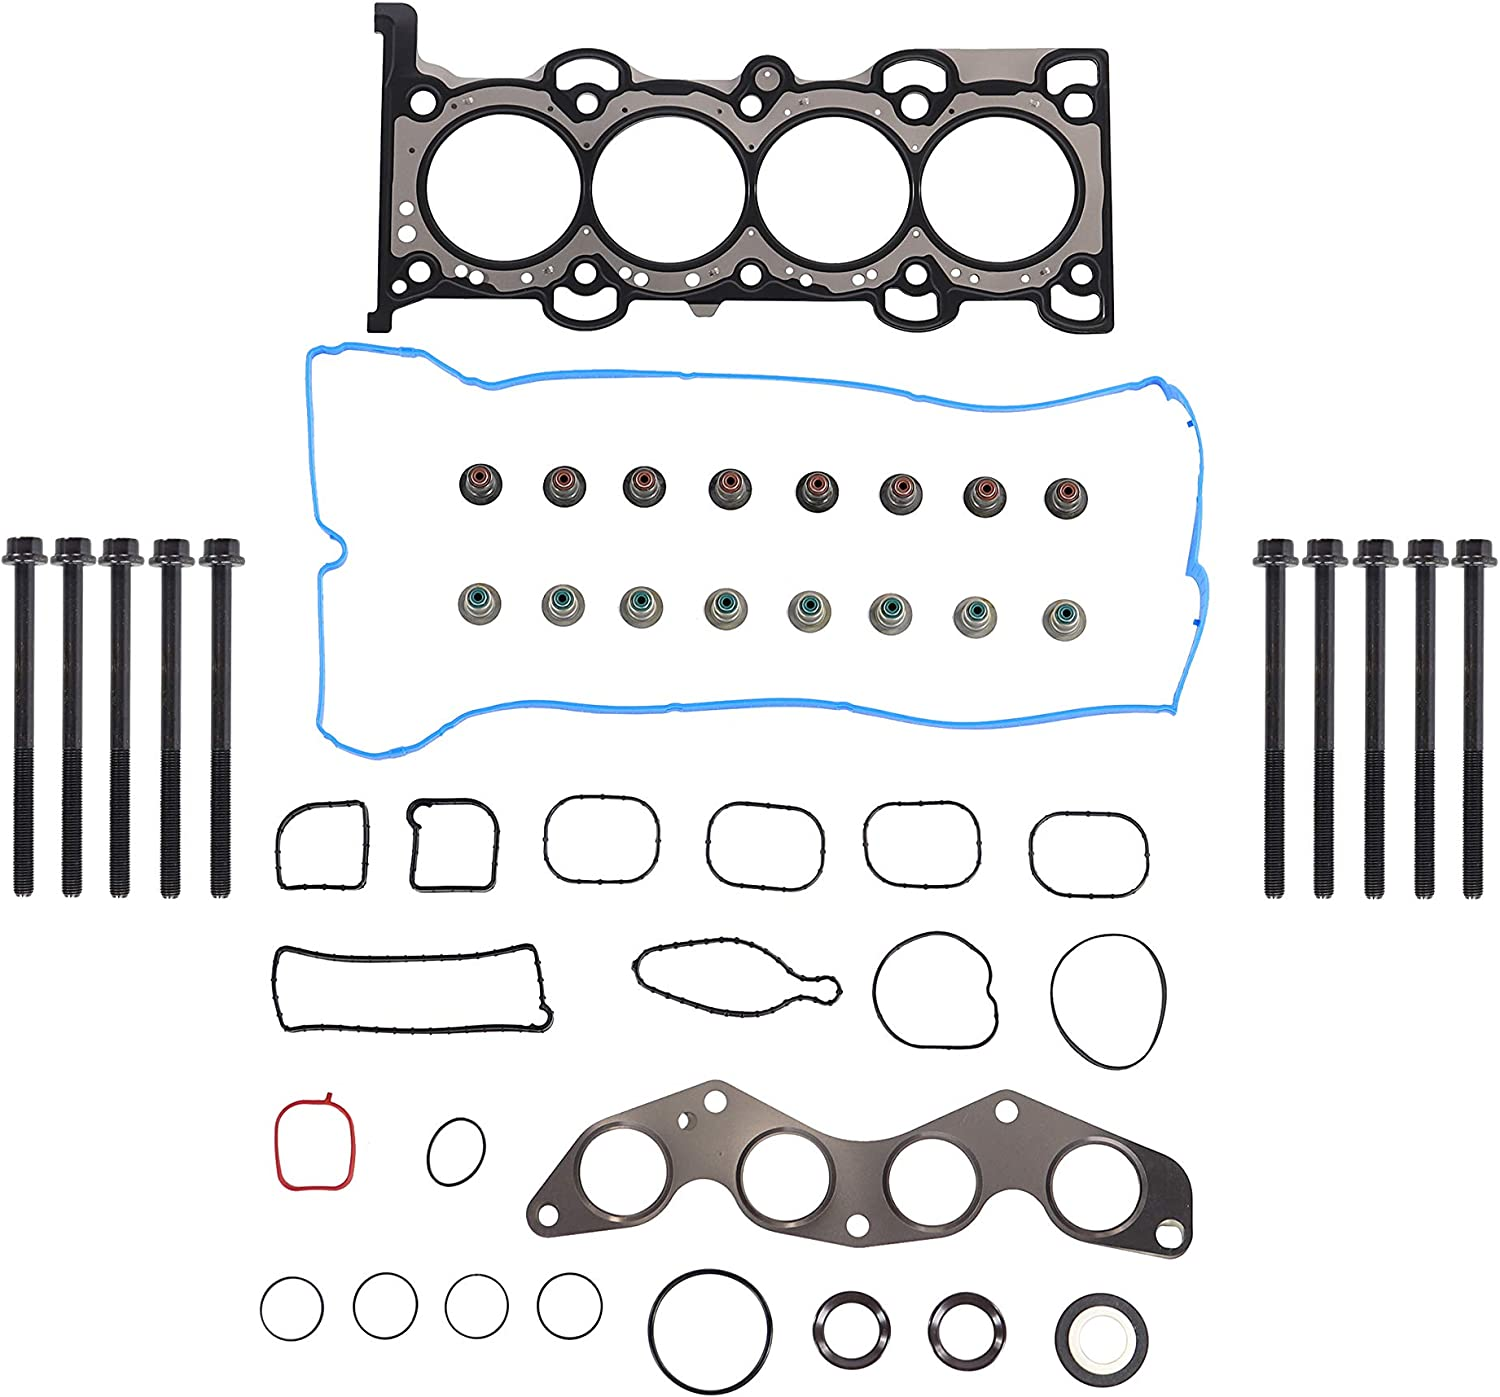 DNJ Head Gasket Set with Head Bolt Kit For 2012-2017 for Ford Focus 2.0L 1999cc 122cid L4 DOHC